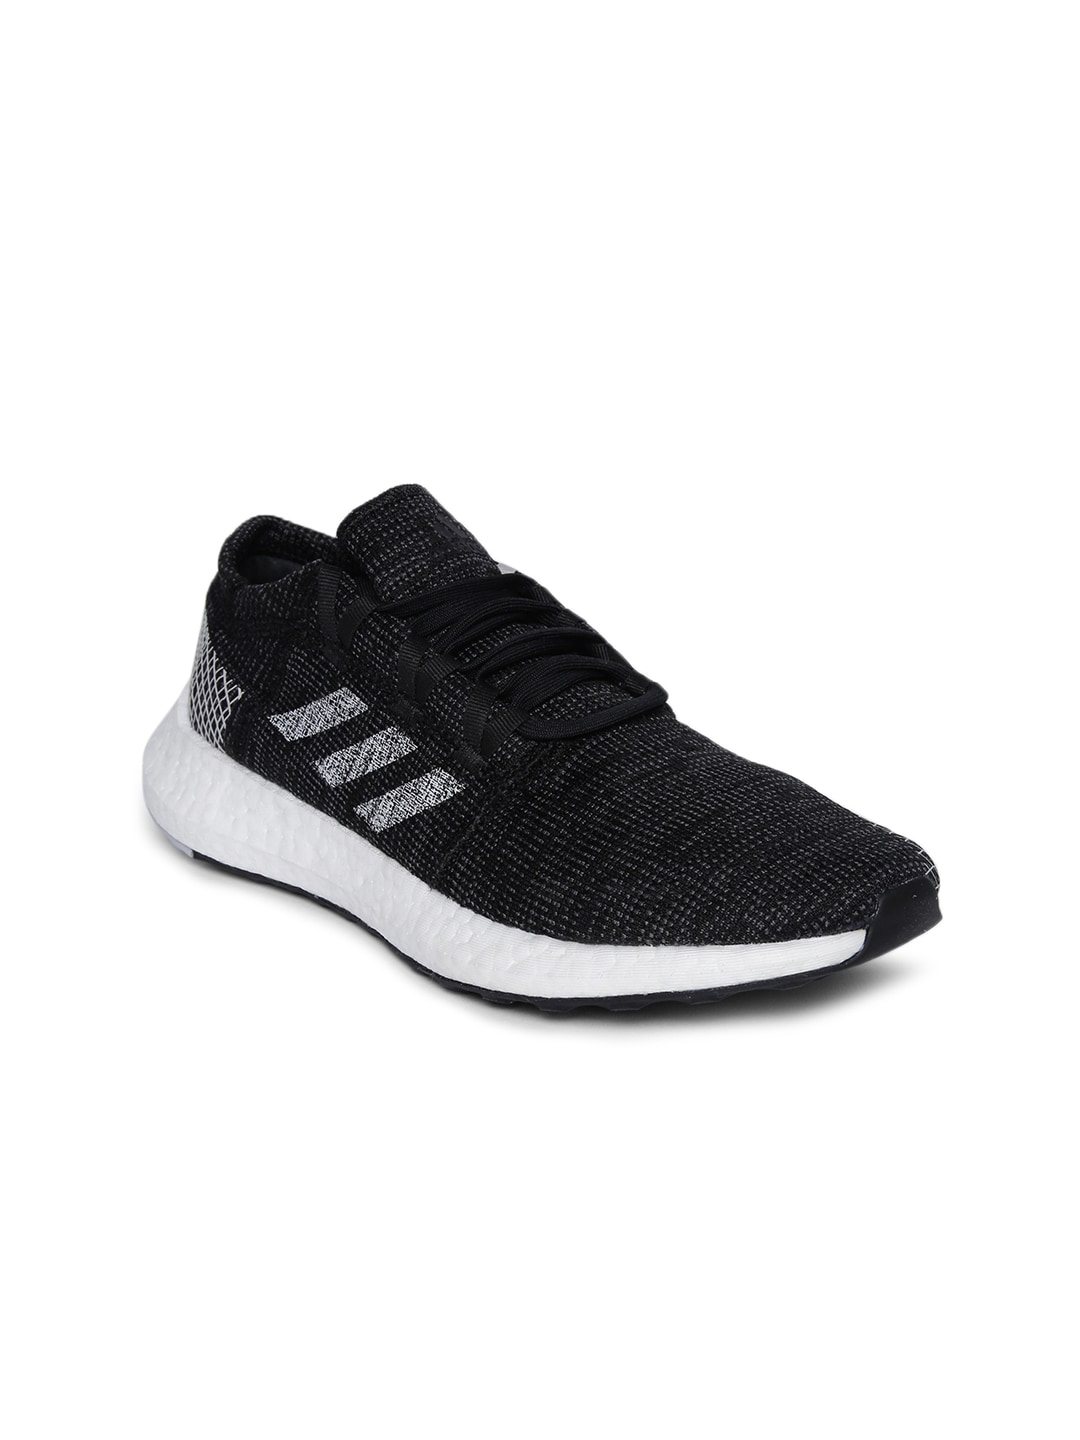 7f086e8168888 Adidas Football Shoes - Buy Adidas Football Shoes for Men Online in India